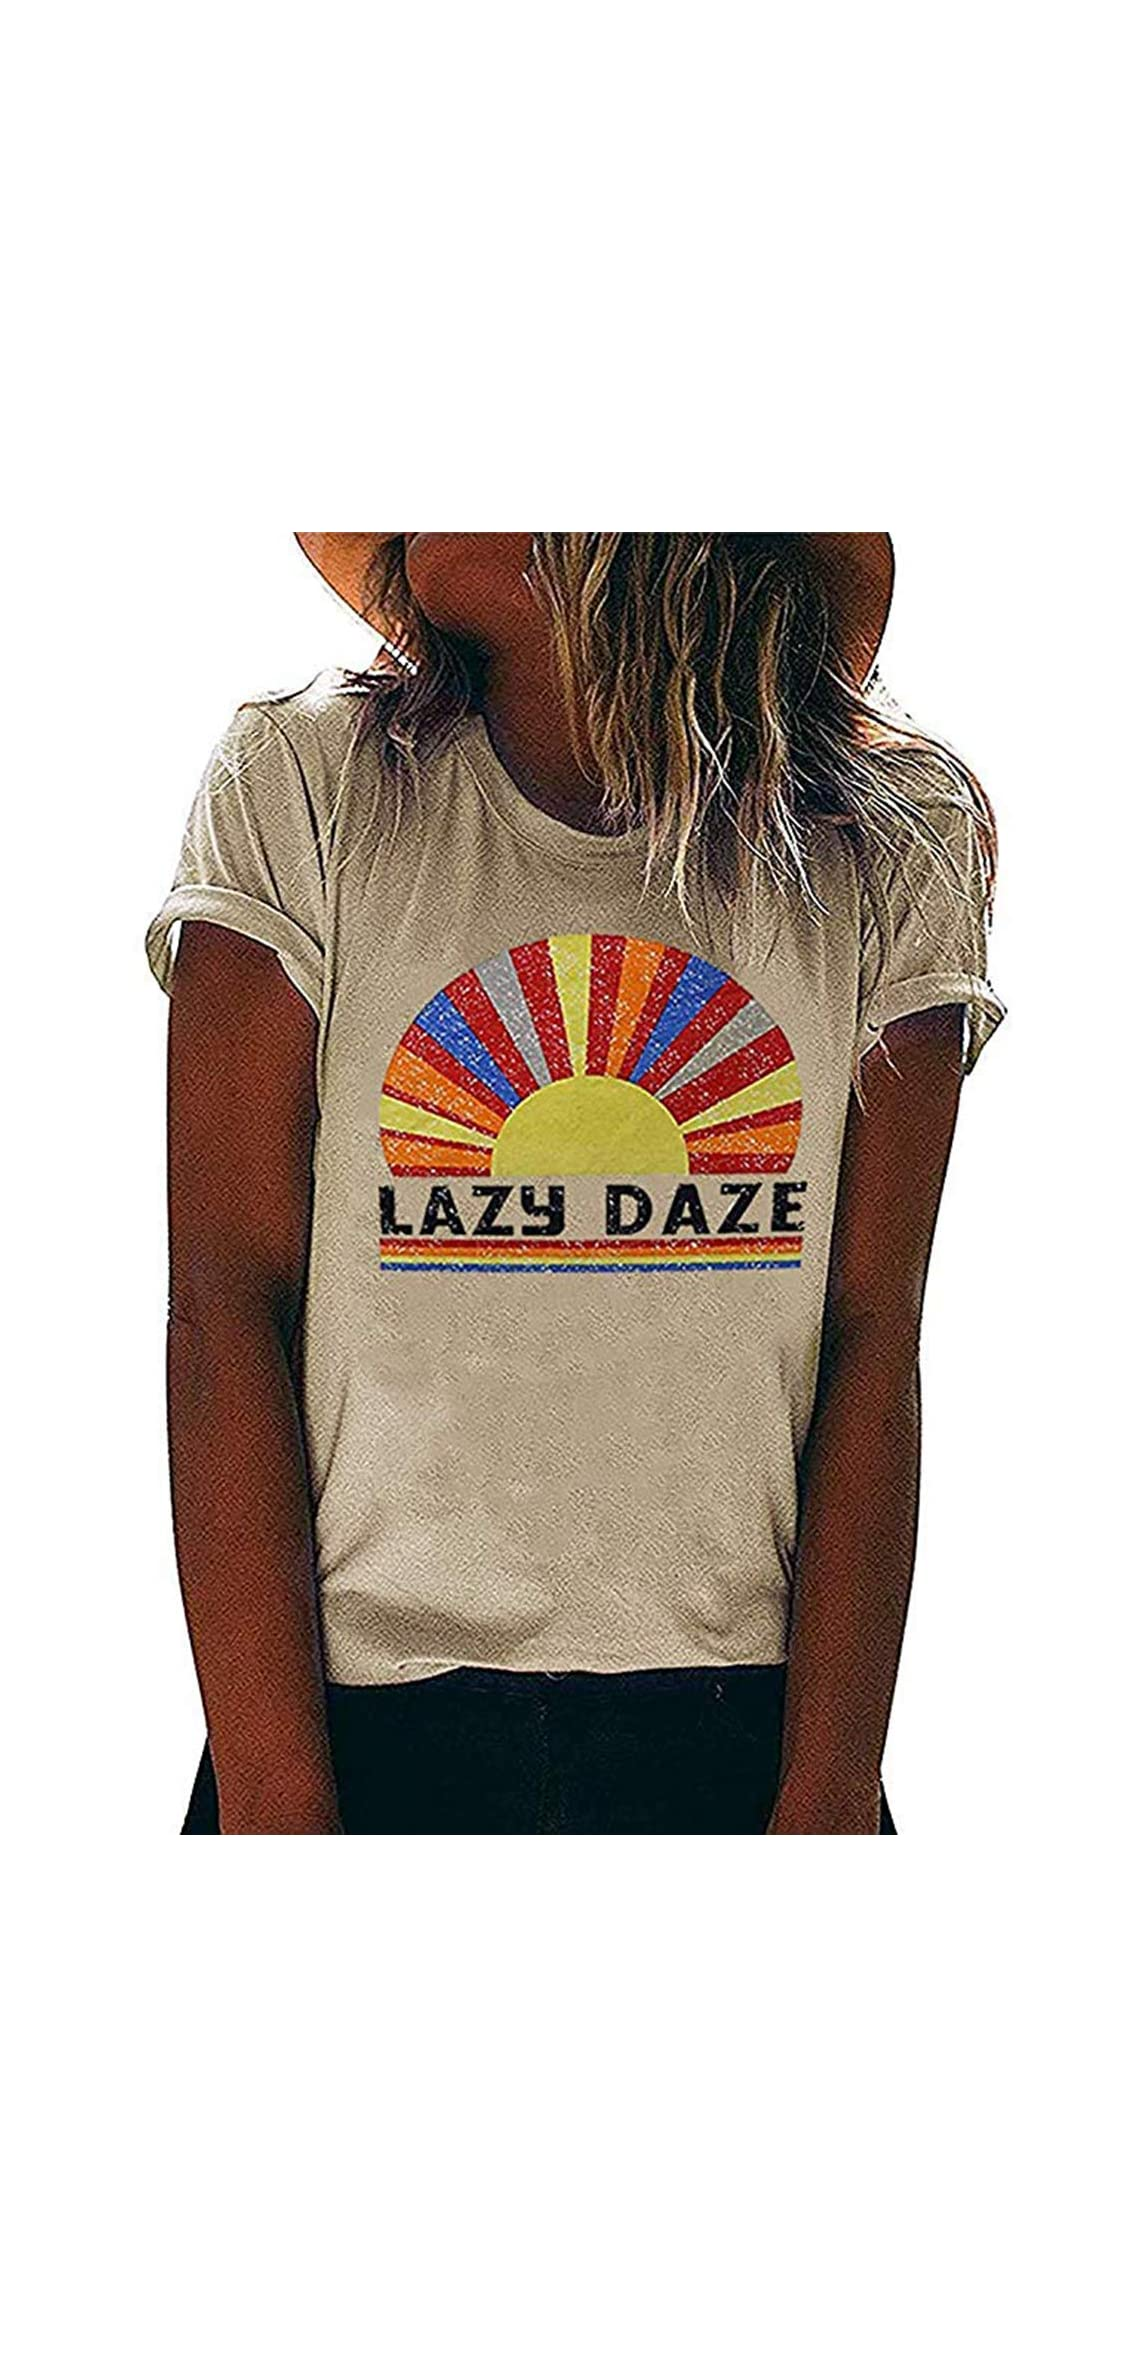 Lazy Daze Shirt Women Rainbow Graphic Tee Short Sleeve Letter